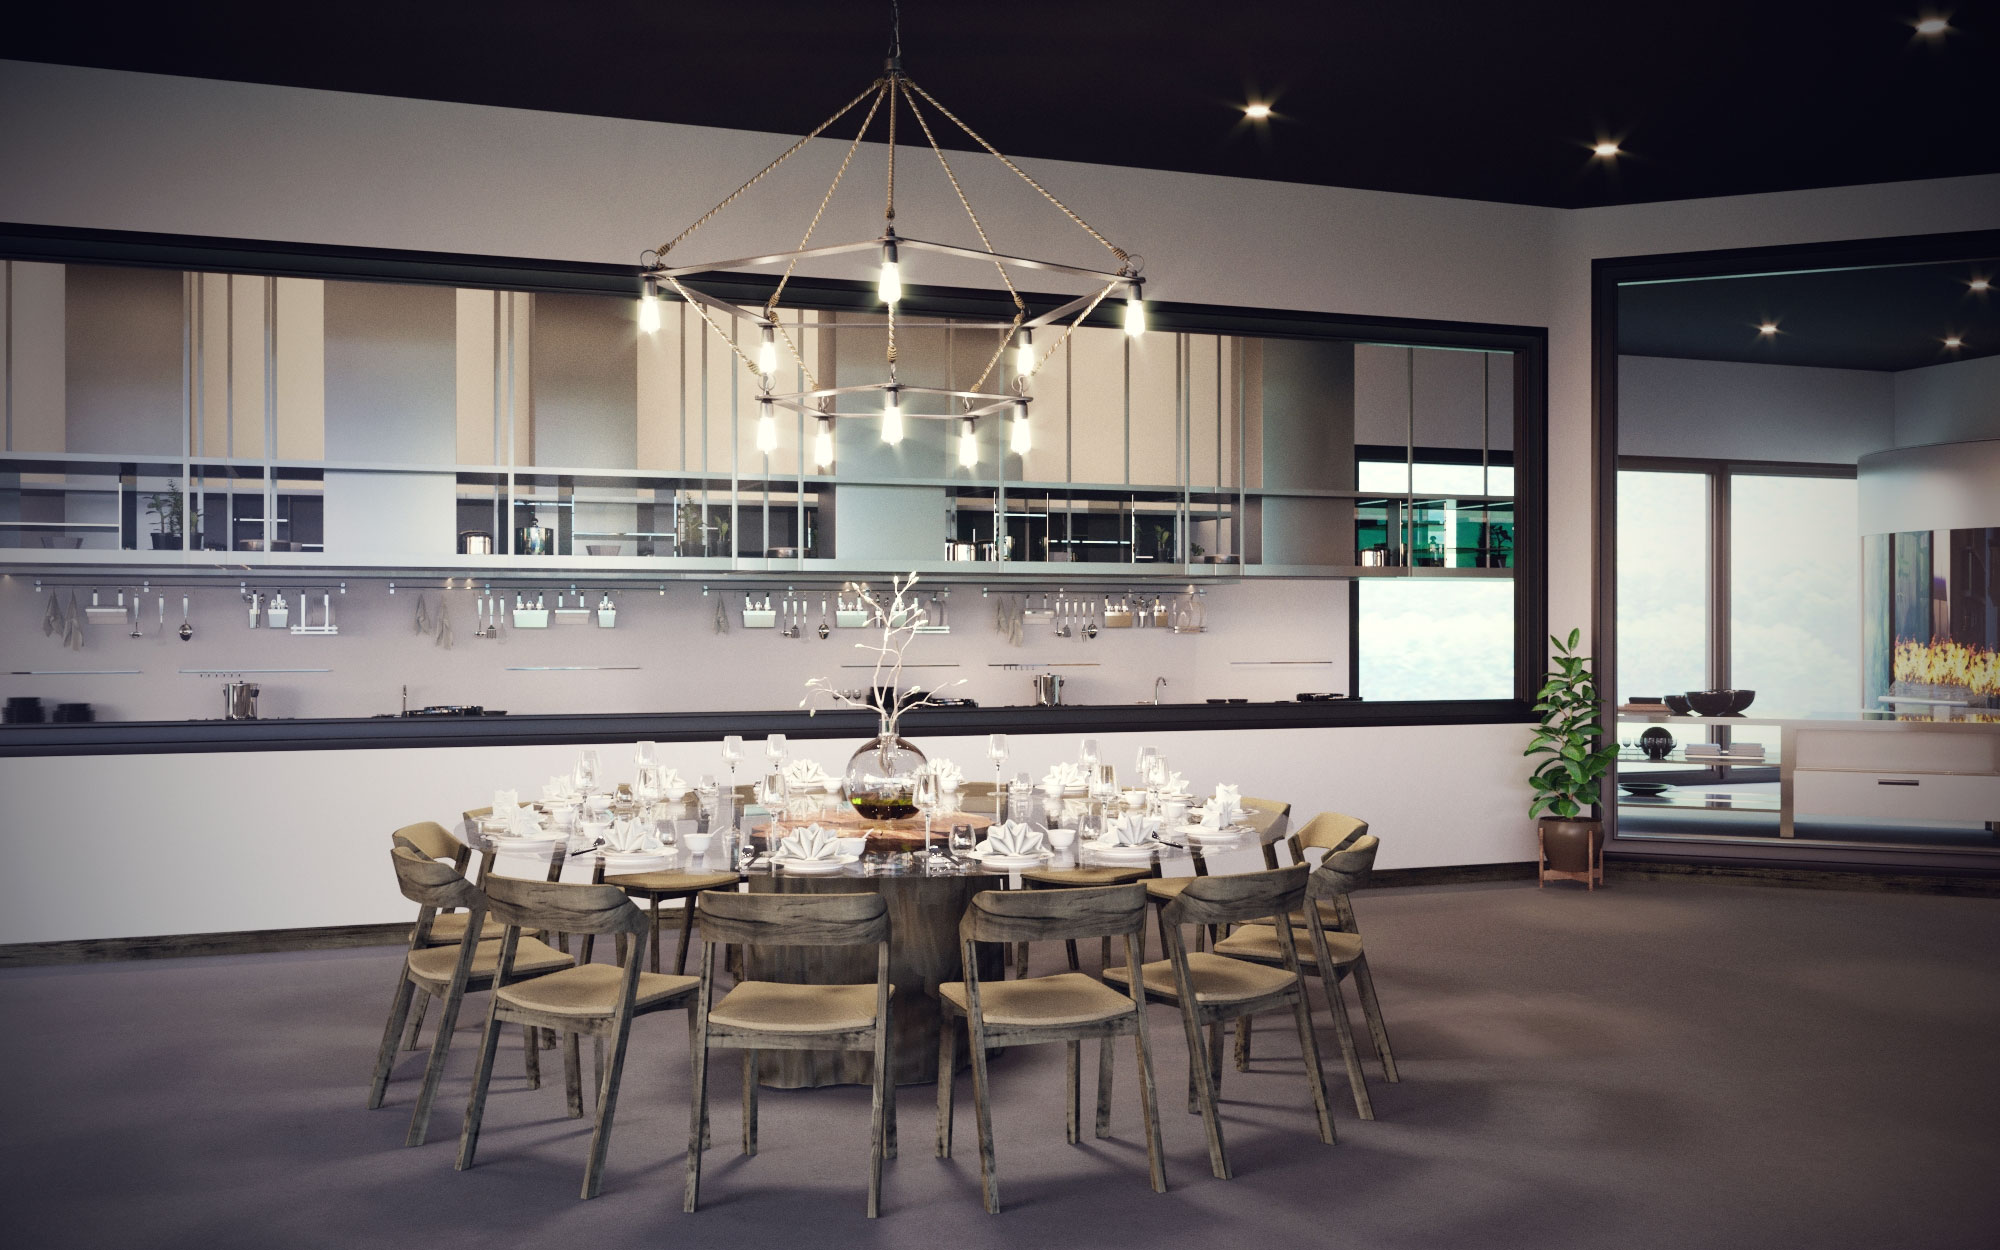 536-Resort-Concept-Restaurant-Kitchen